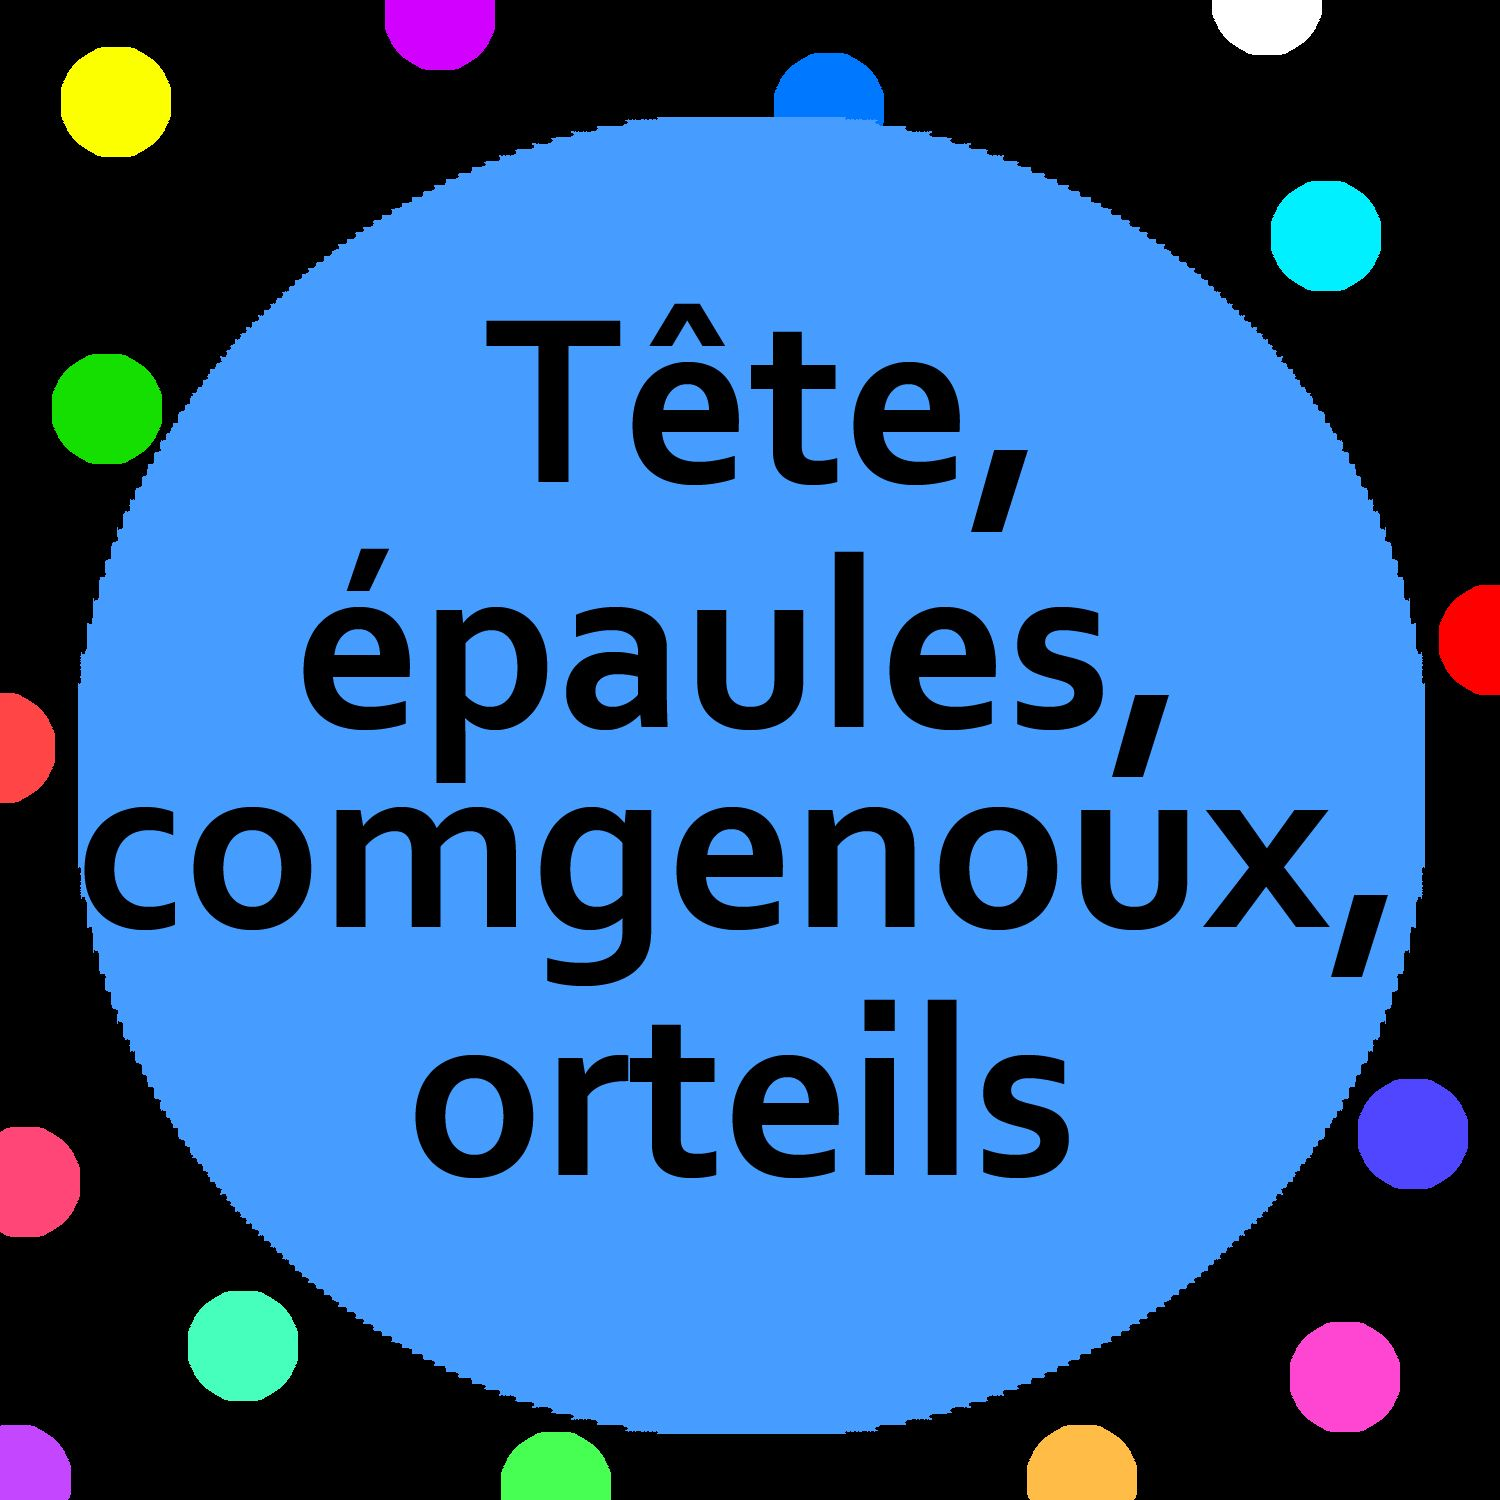 Tete Epaules Genoux Orteils Song With Song Lyrics